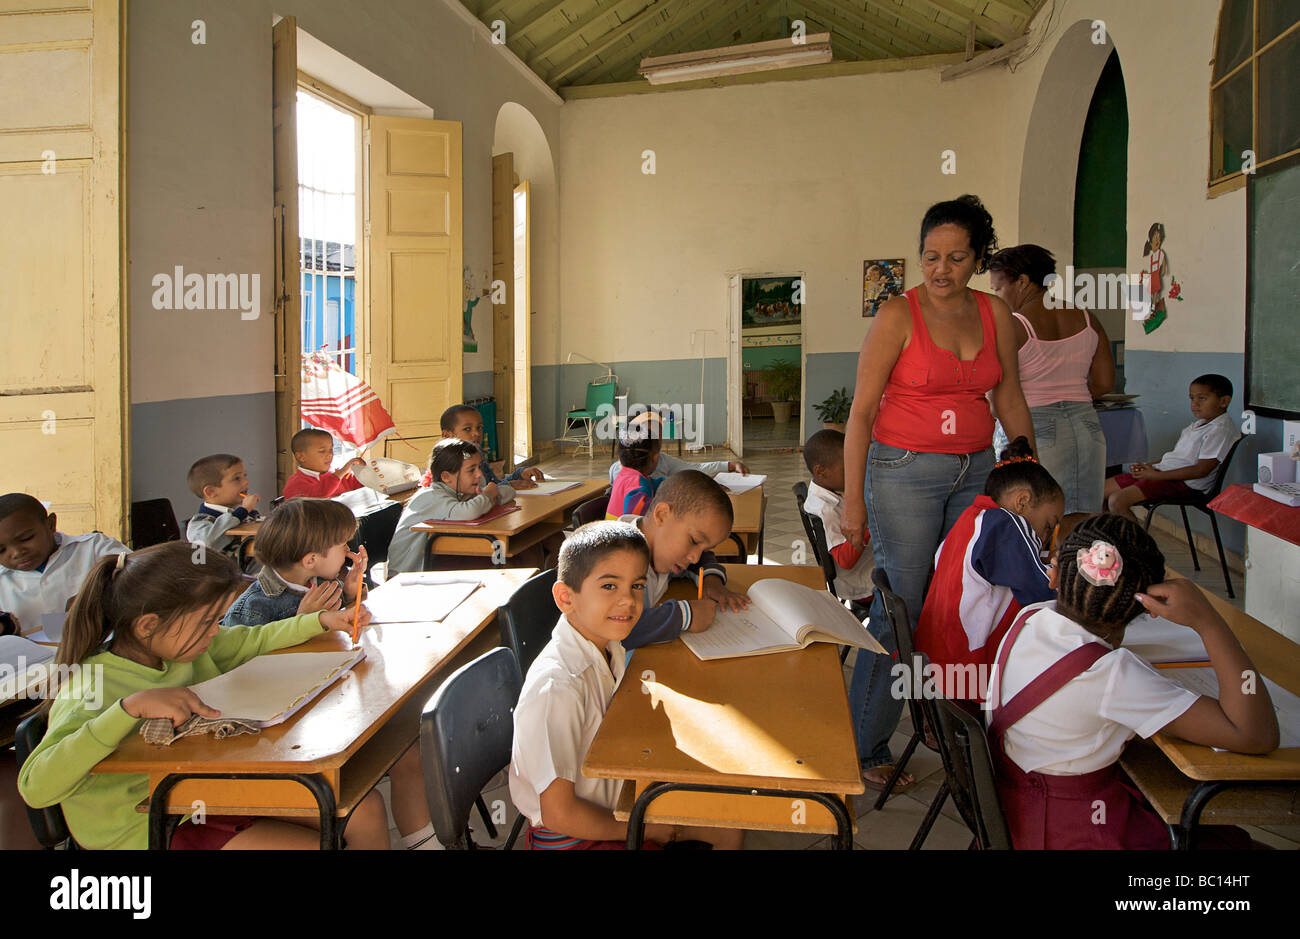 Primary school with children at their desks. Trinidad, Cuba - Stock Image